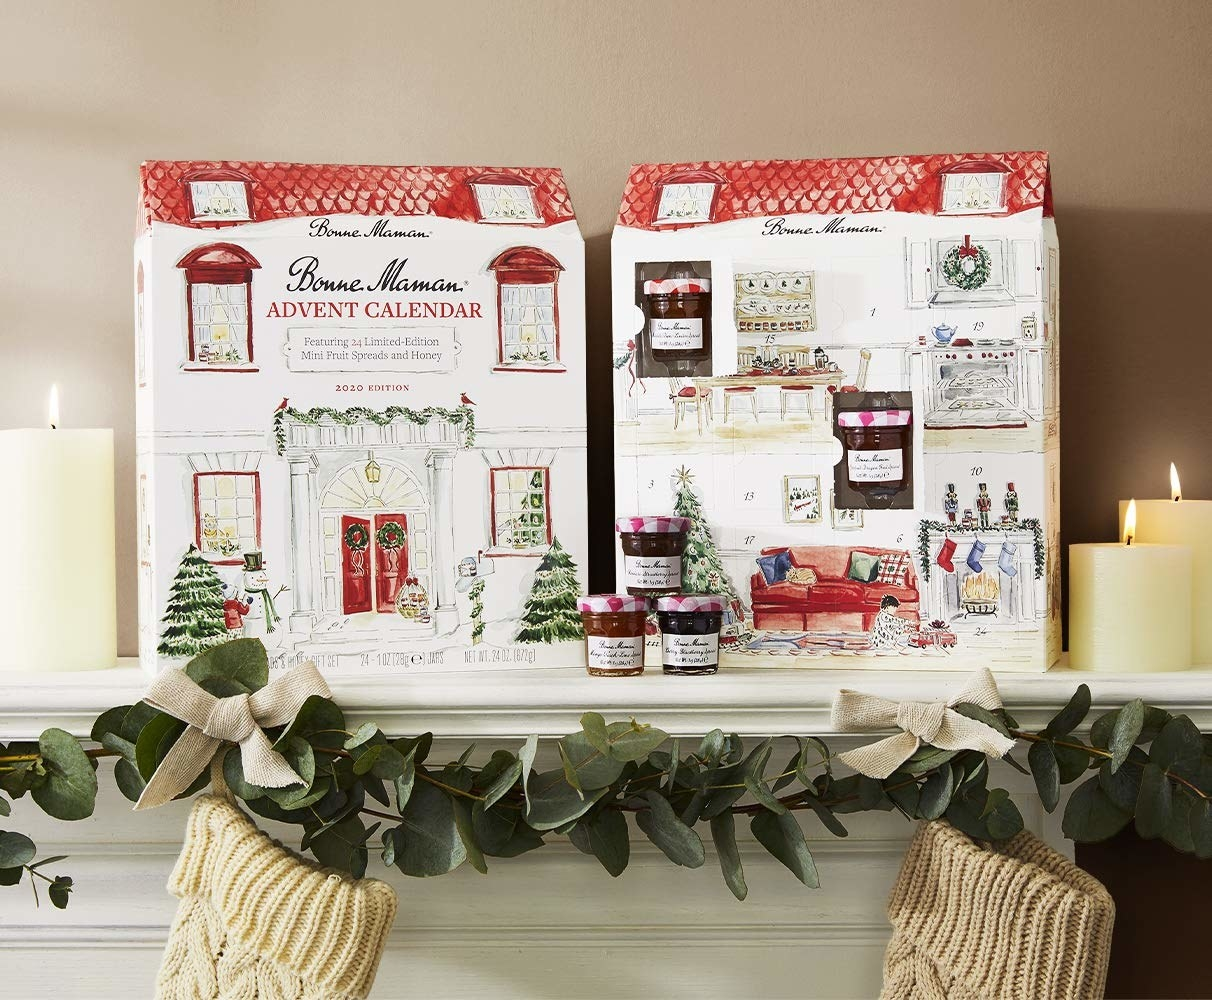 a beautiful advent calendar designed to look like a house filled with mini jams and honey